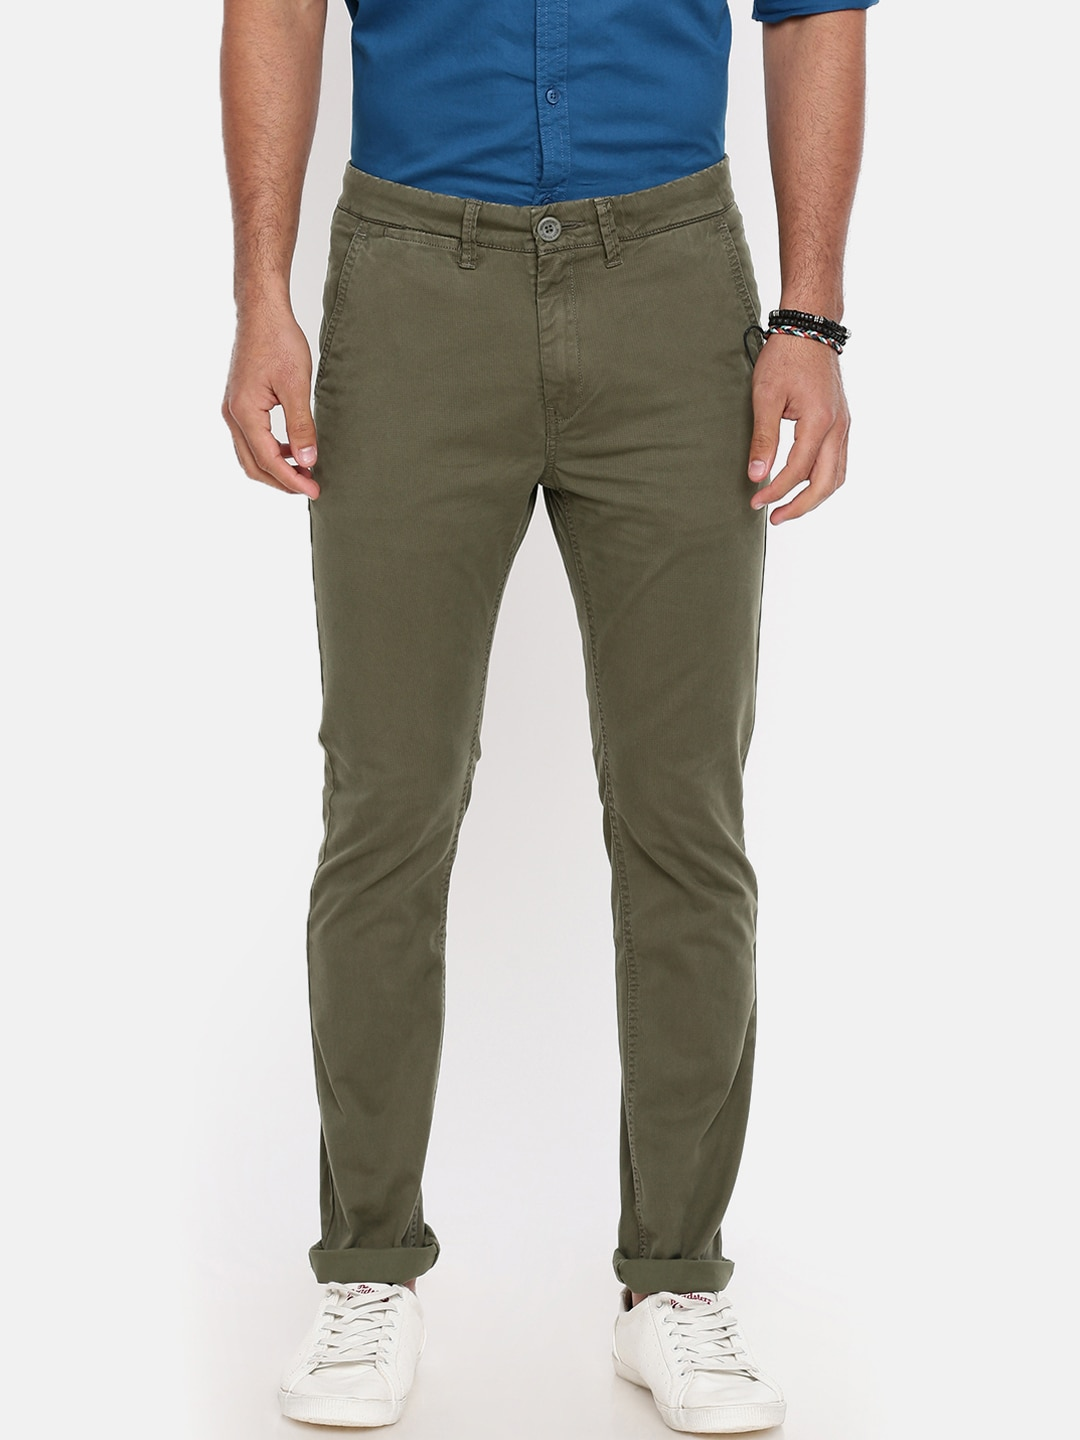 51000141fe9ea Trousers India | Buy Fashion Trousers for Men, Women Online in India